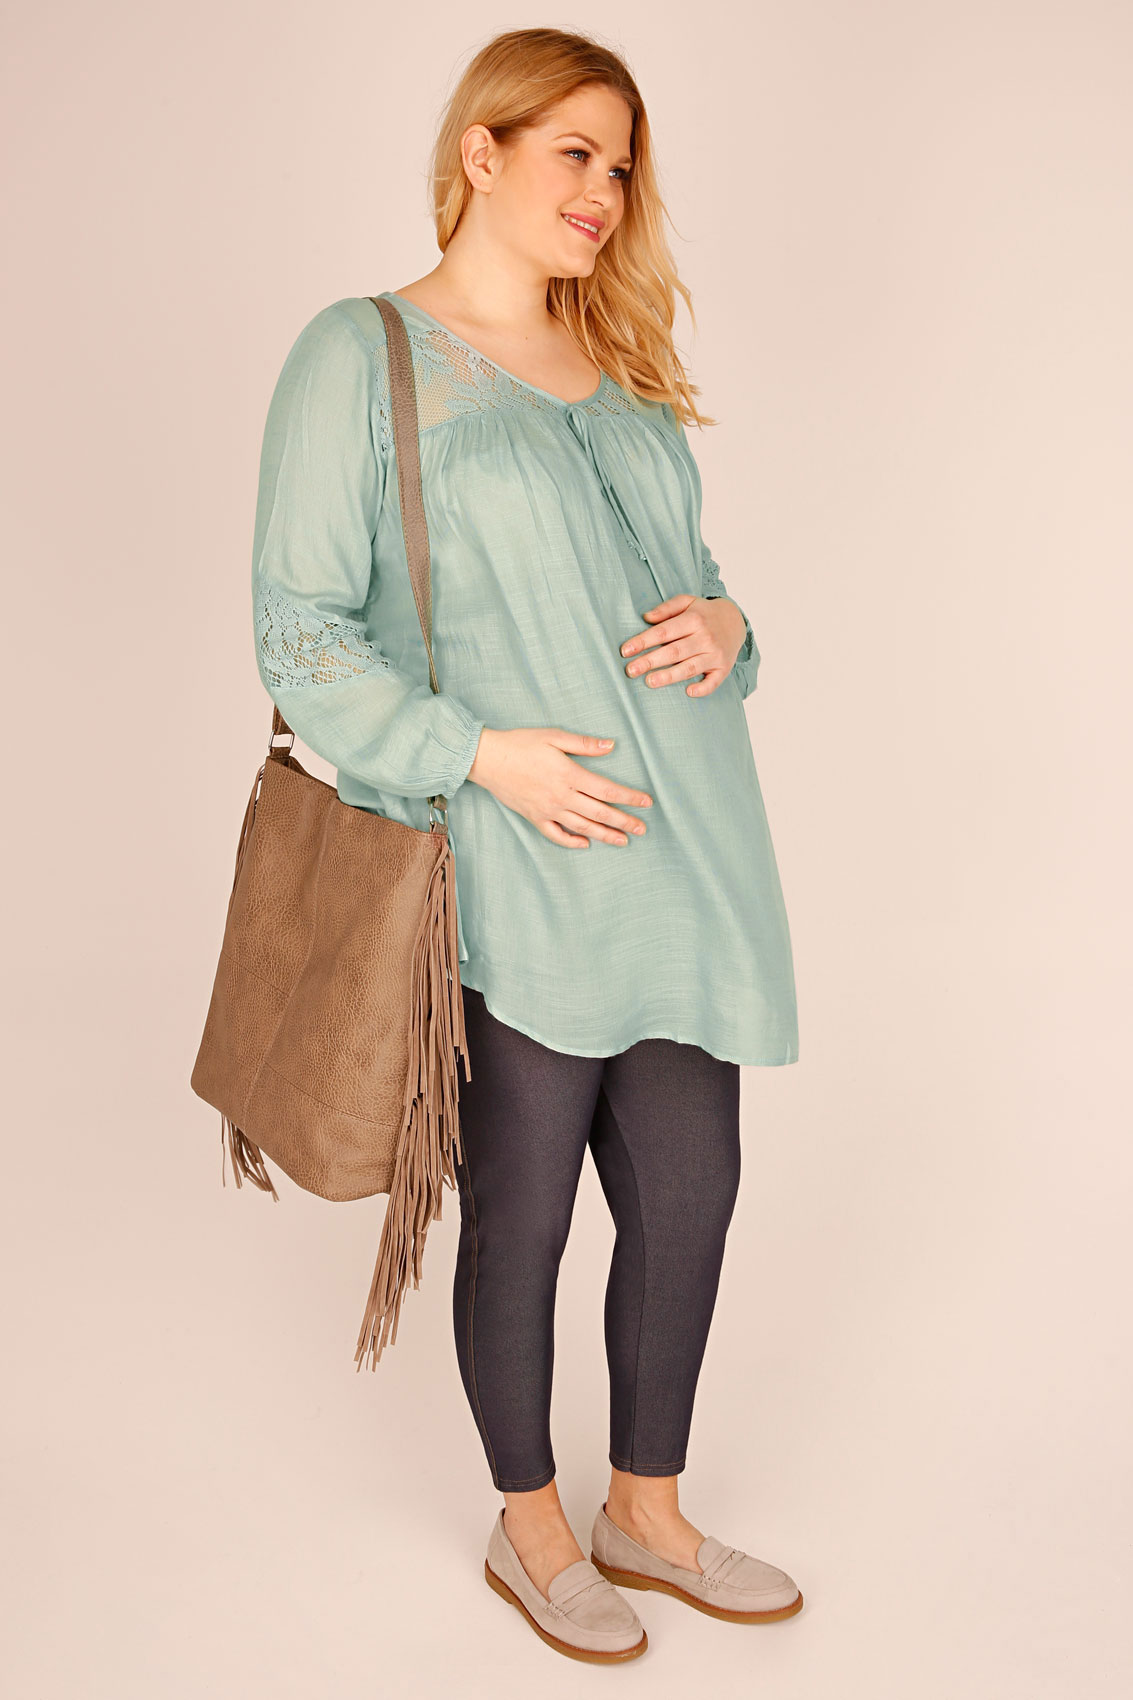 In addition to maternity clothing and nursing options you will find beautiful maternity lingerie, layette, baby gifts, diaper bags, and skin care lines.